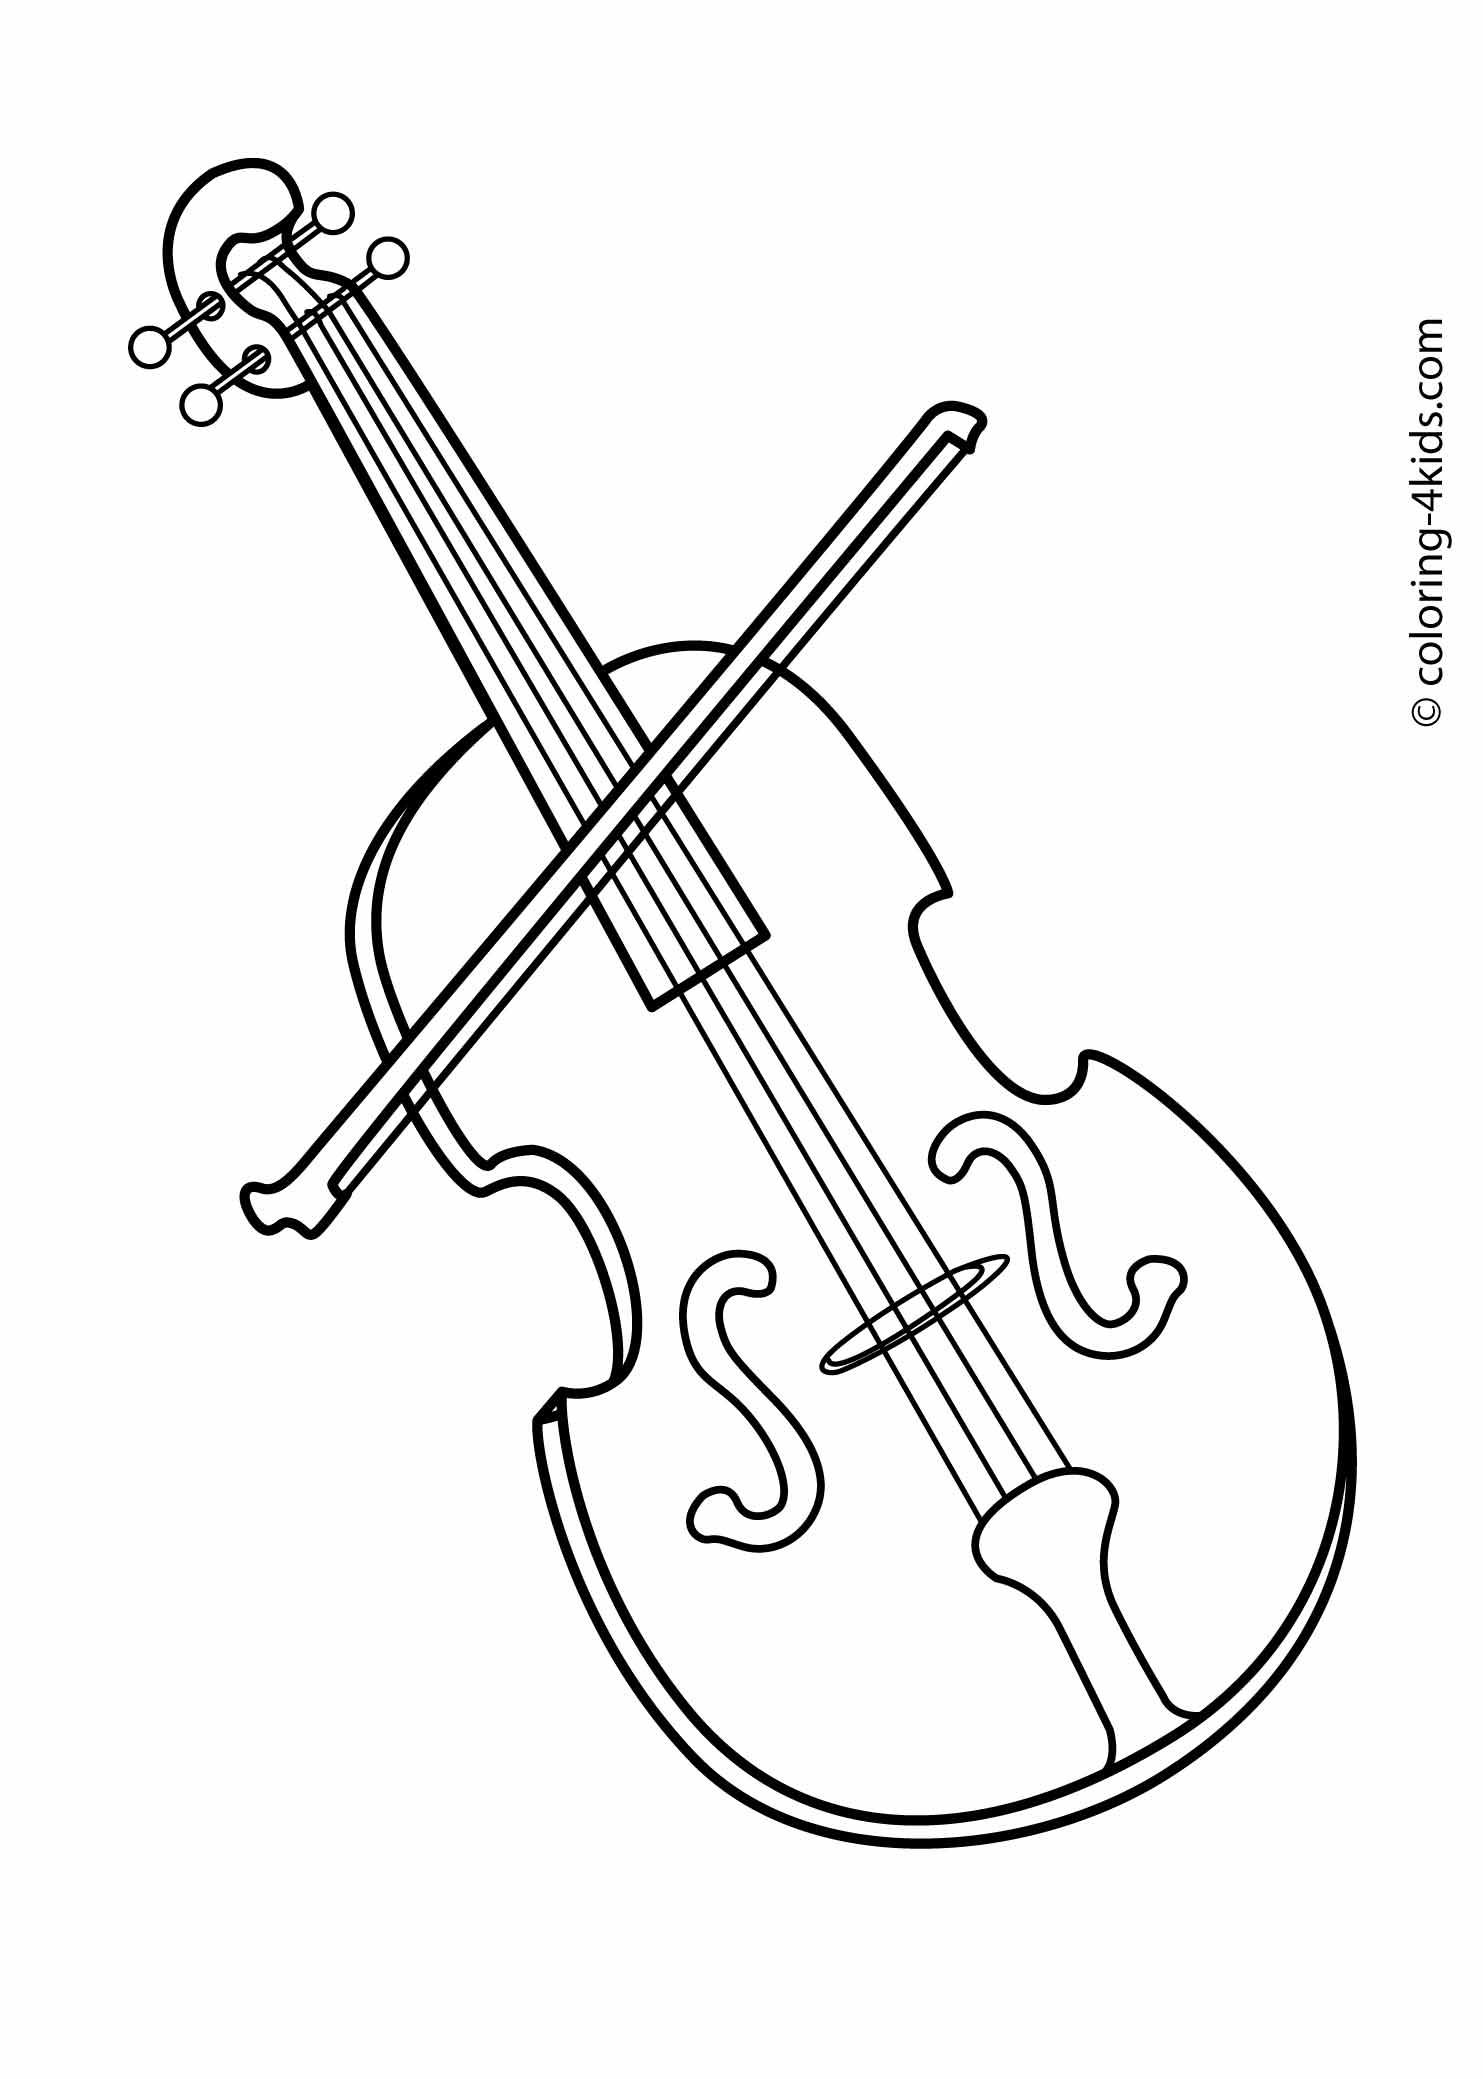 Free Musical Instruments Drawings Download Free Clip Art